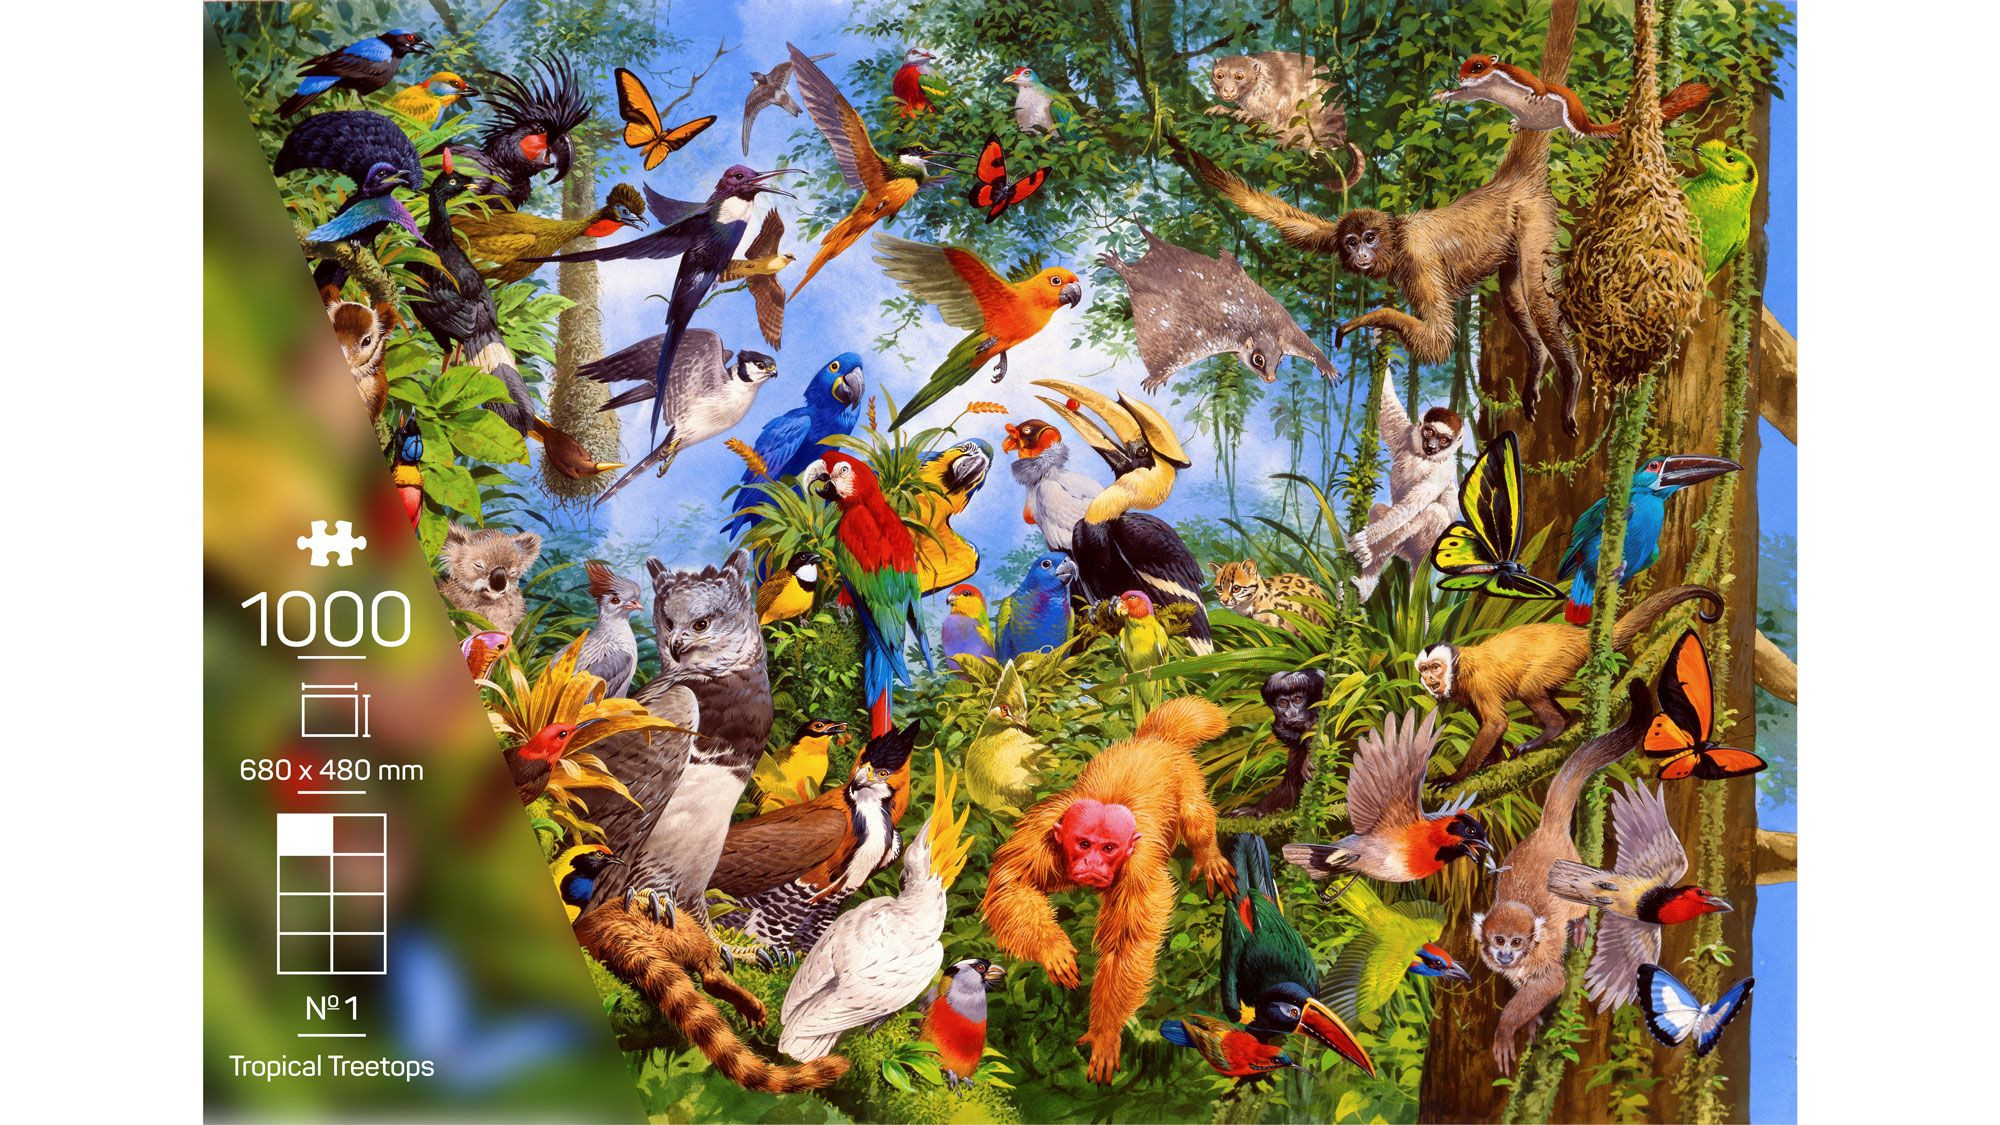 The Wildlife Collection – The complete upper half